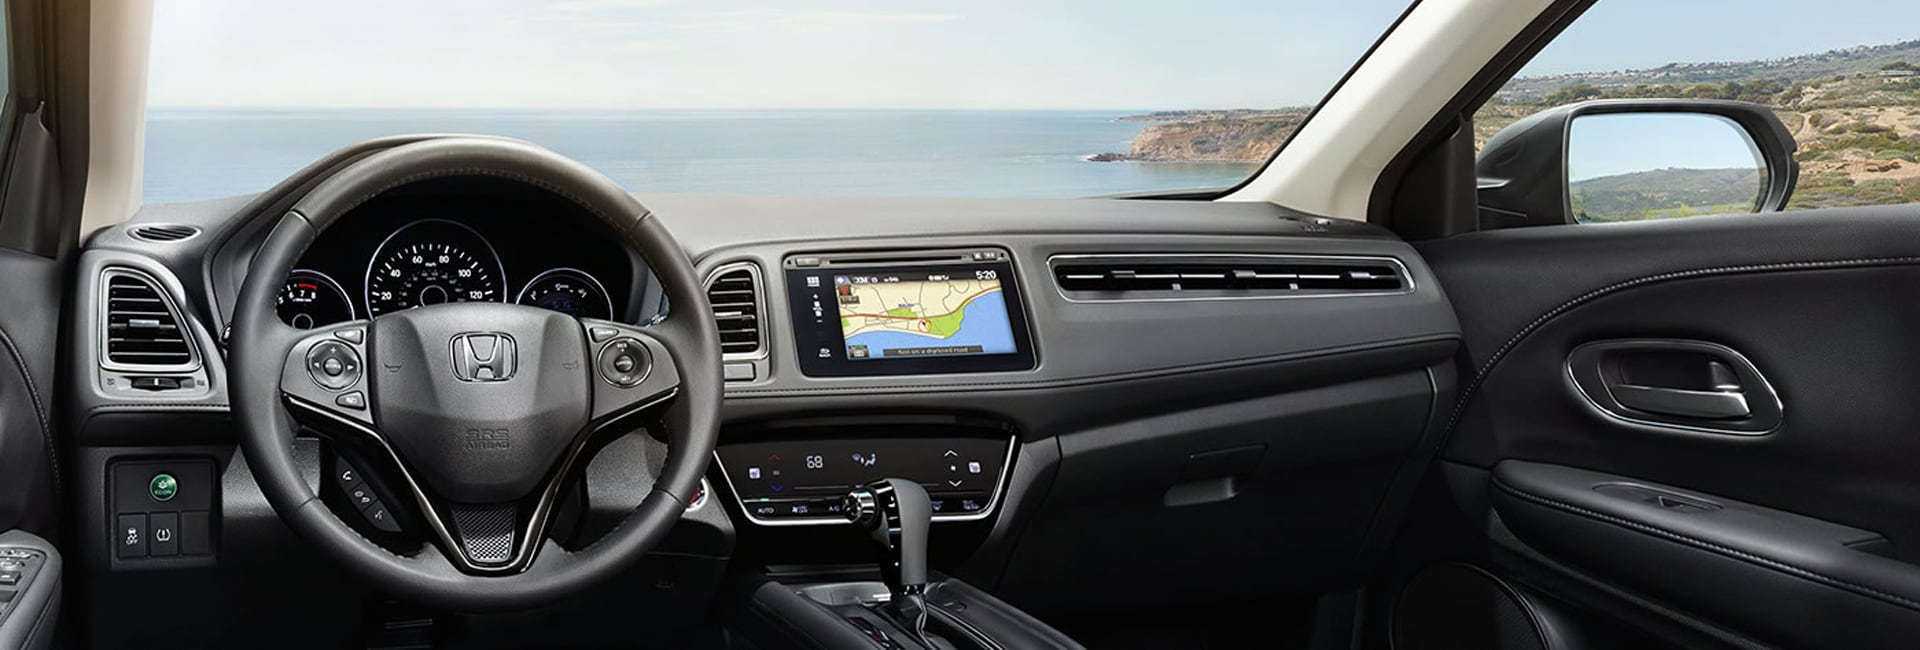 2017 Honda HR-V Interior Features